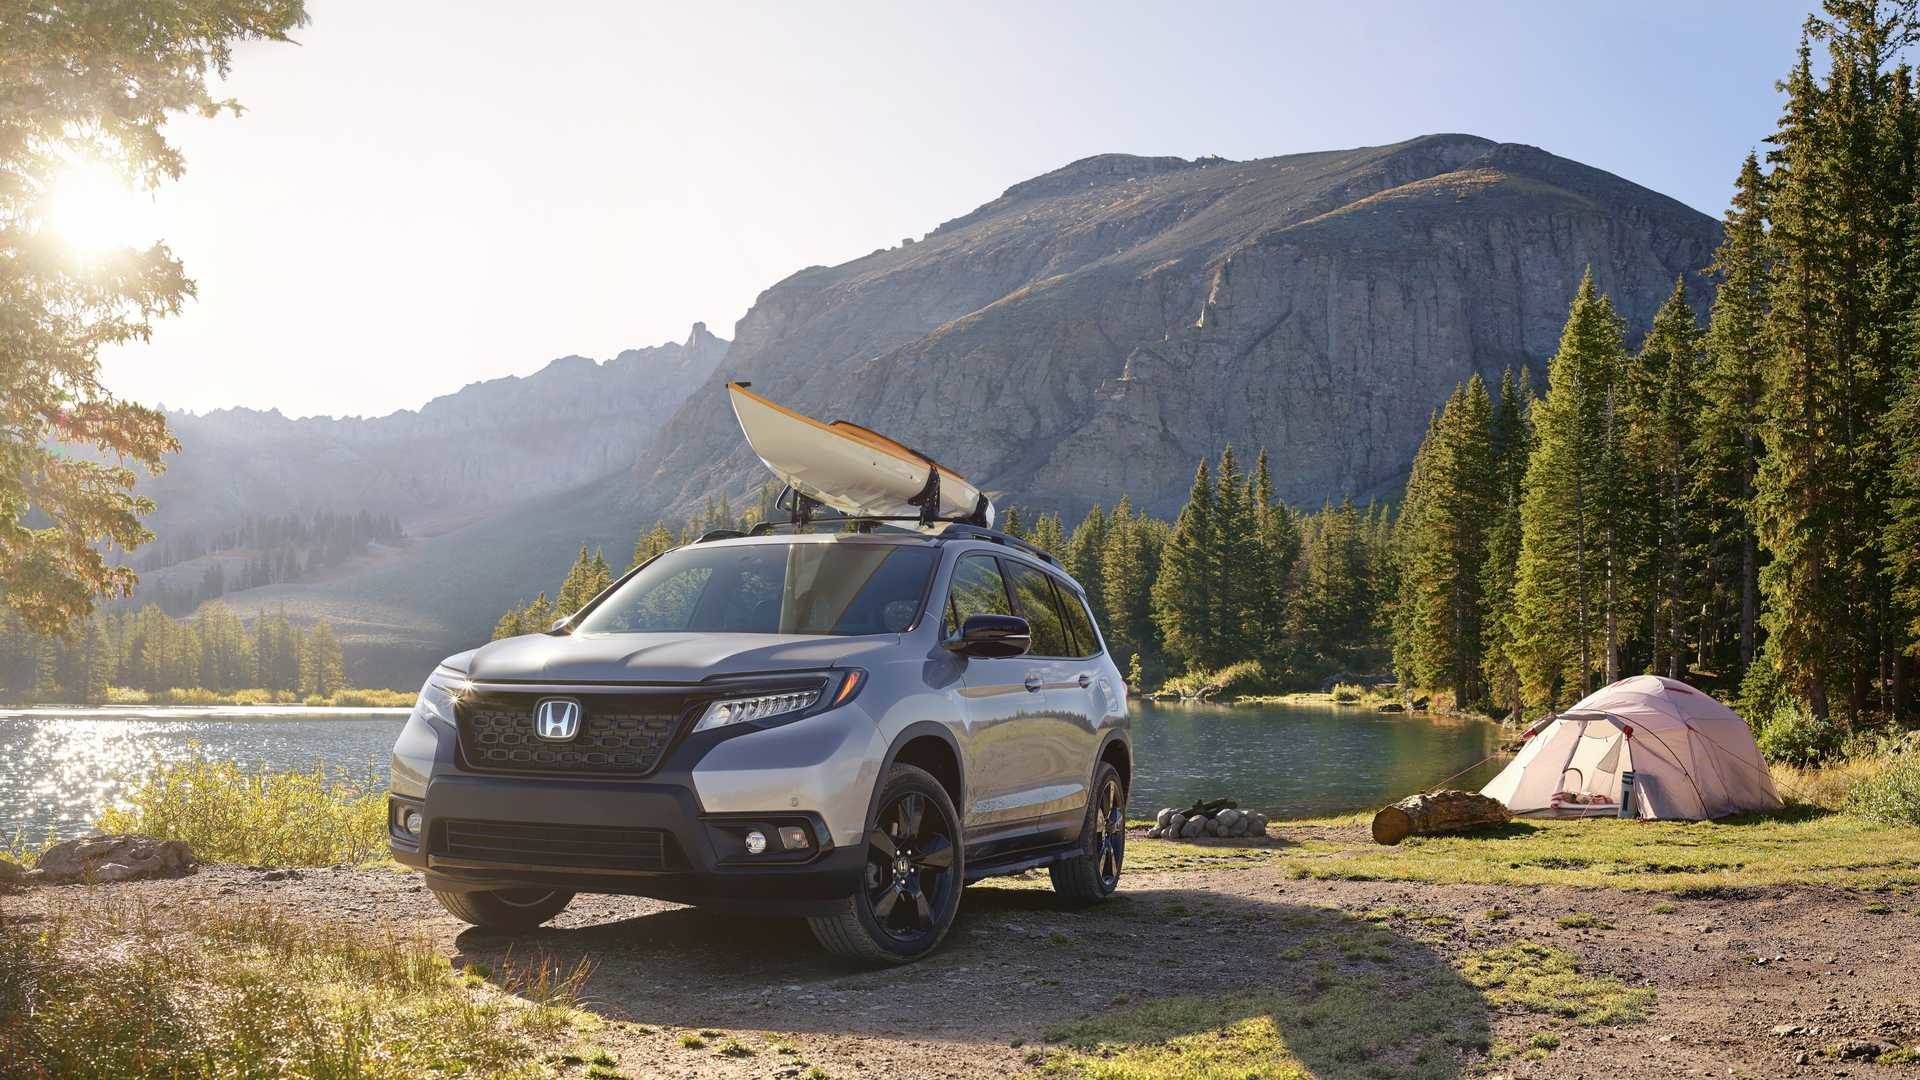 New Honda Passport image gallery